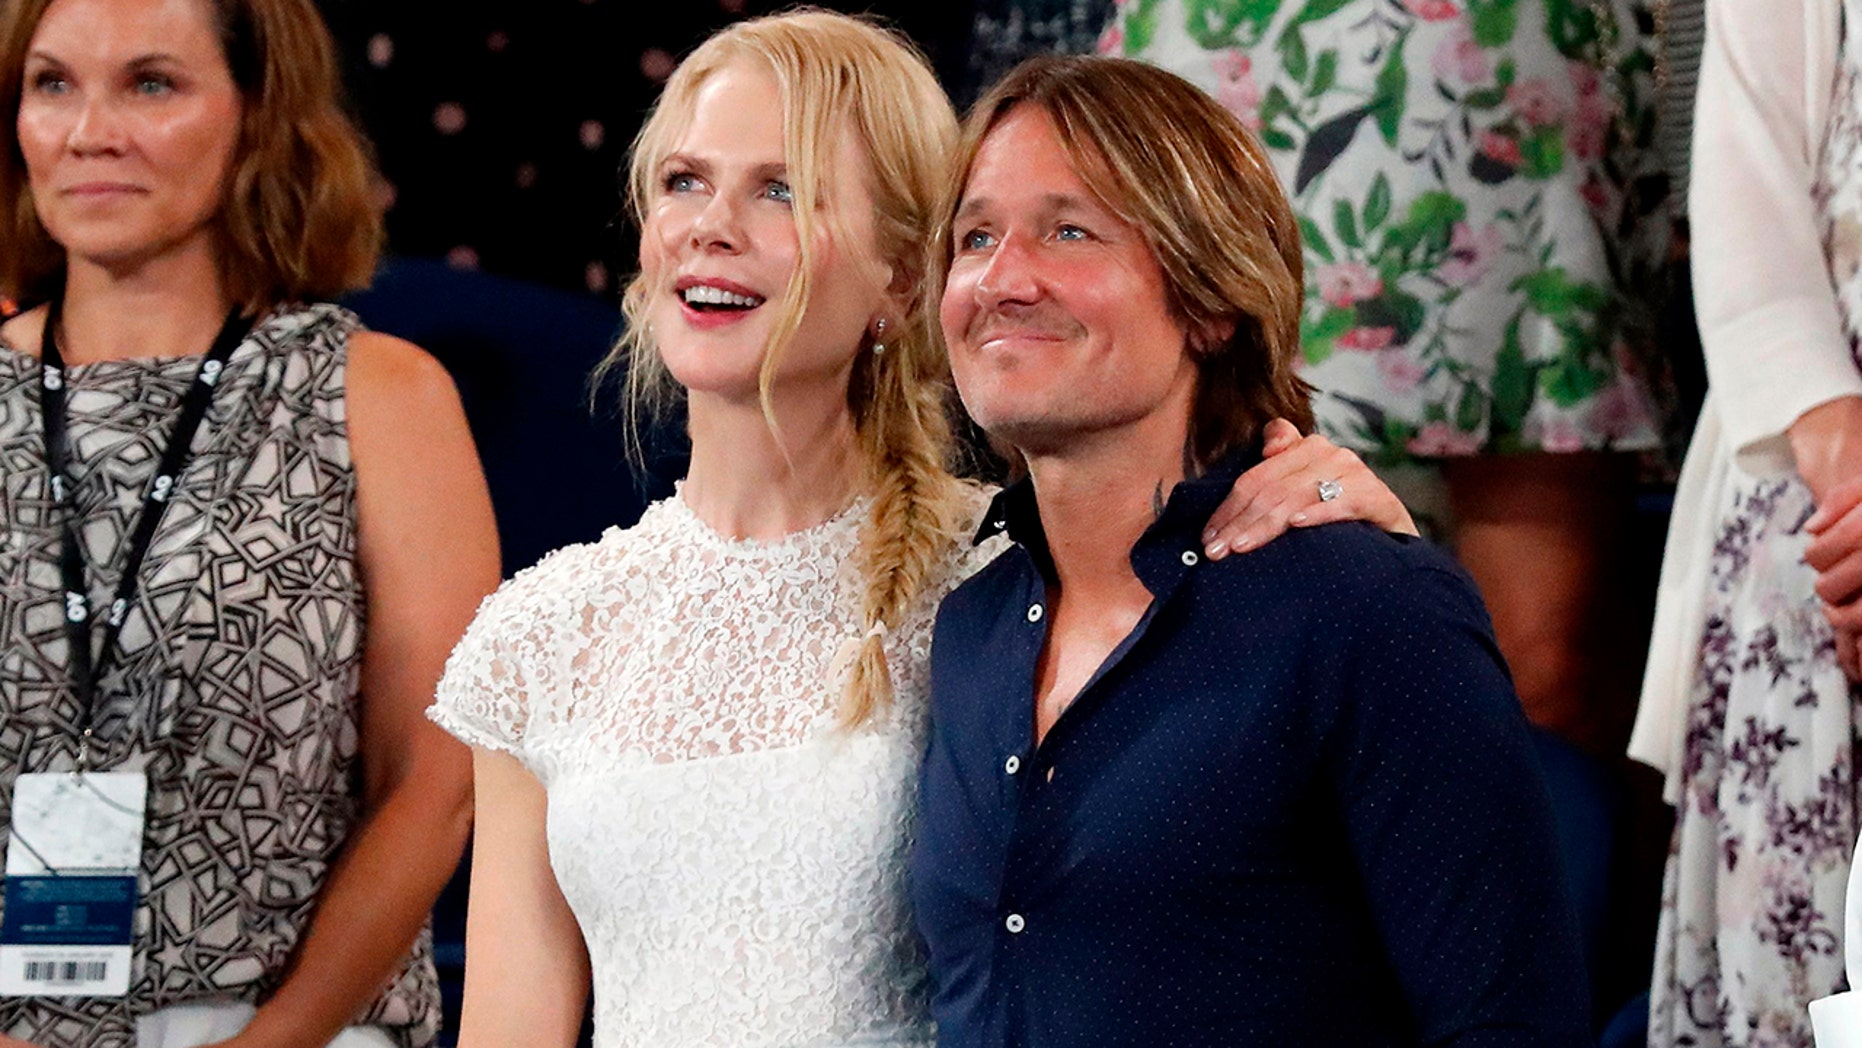 Nicole Kidman and Keith Urban visited an Australia children's hospital to spend time with sick patients.